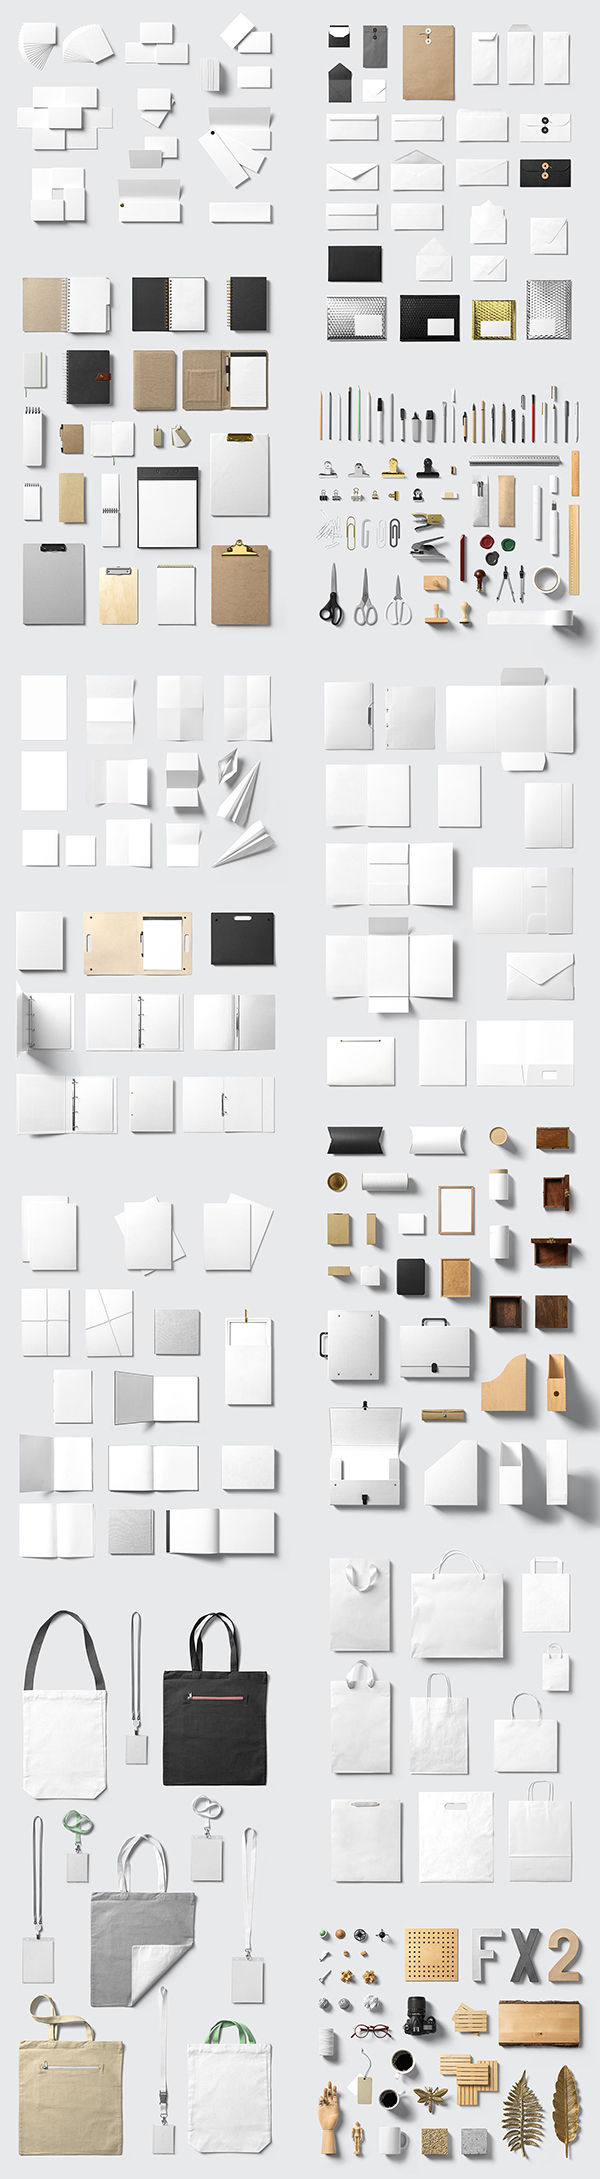 Stationery Mockups - Corporate Pack